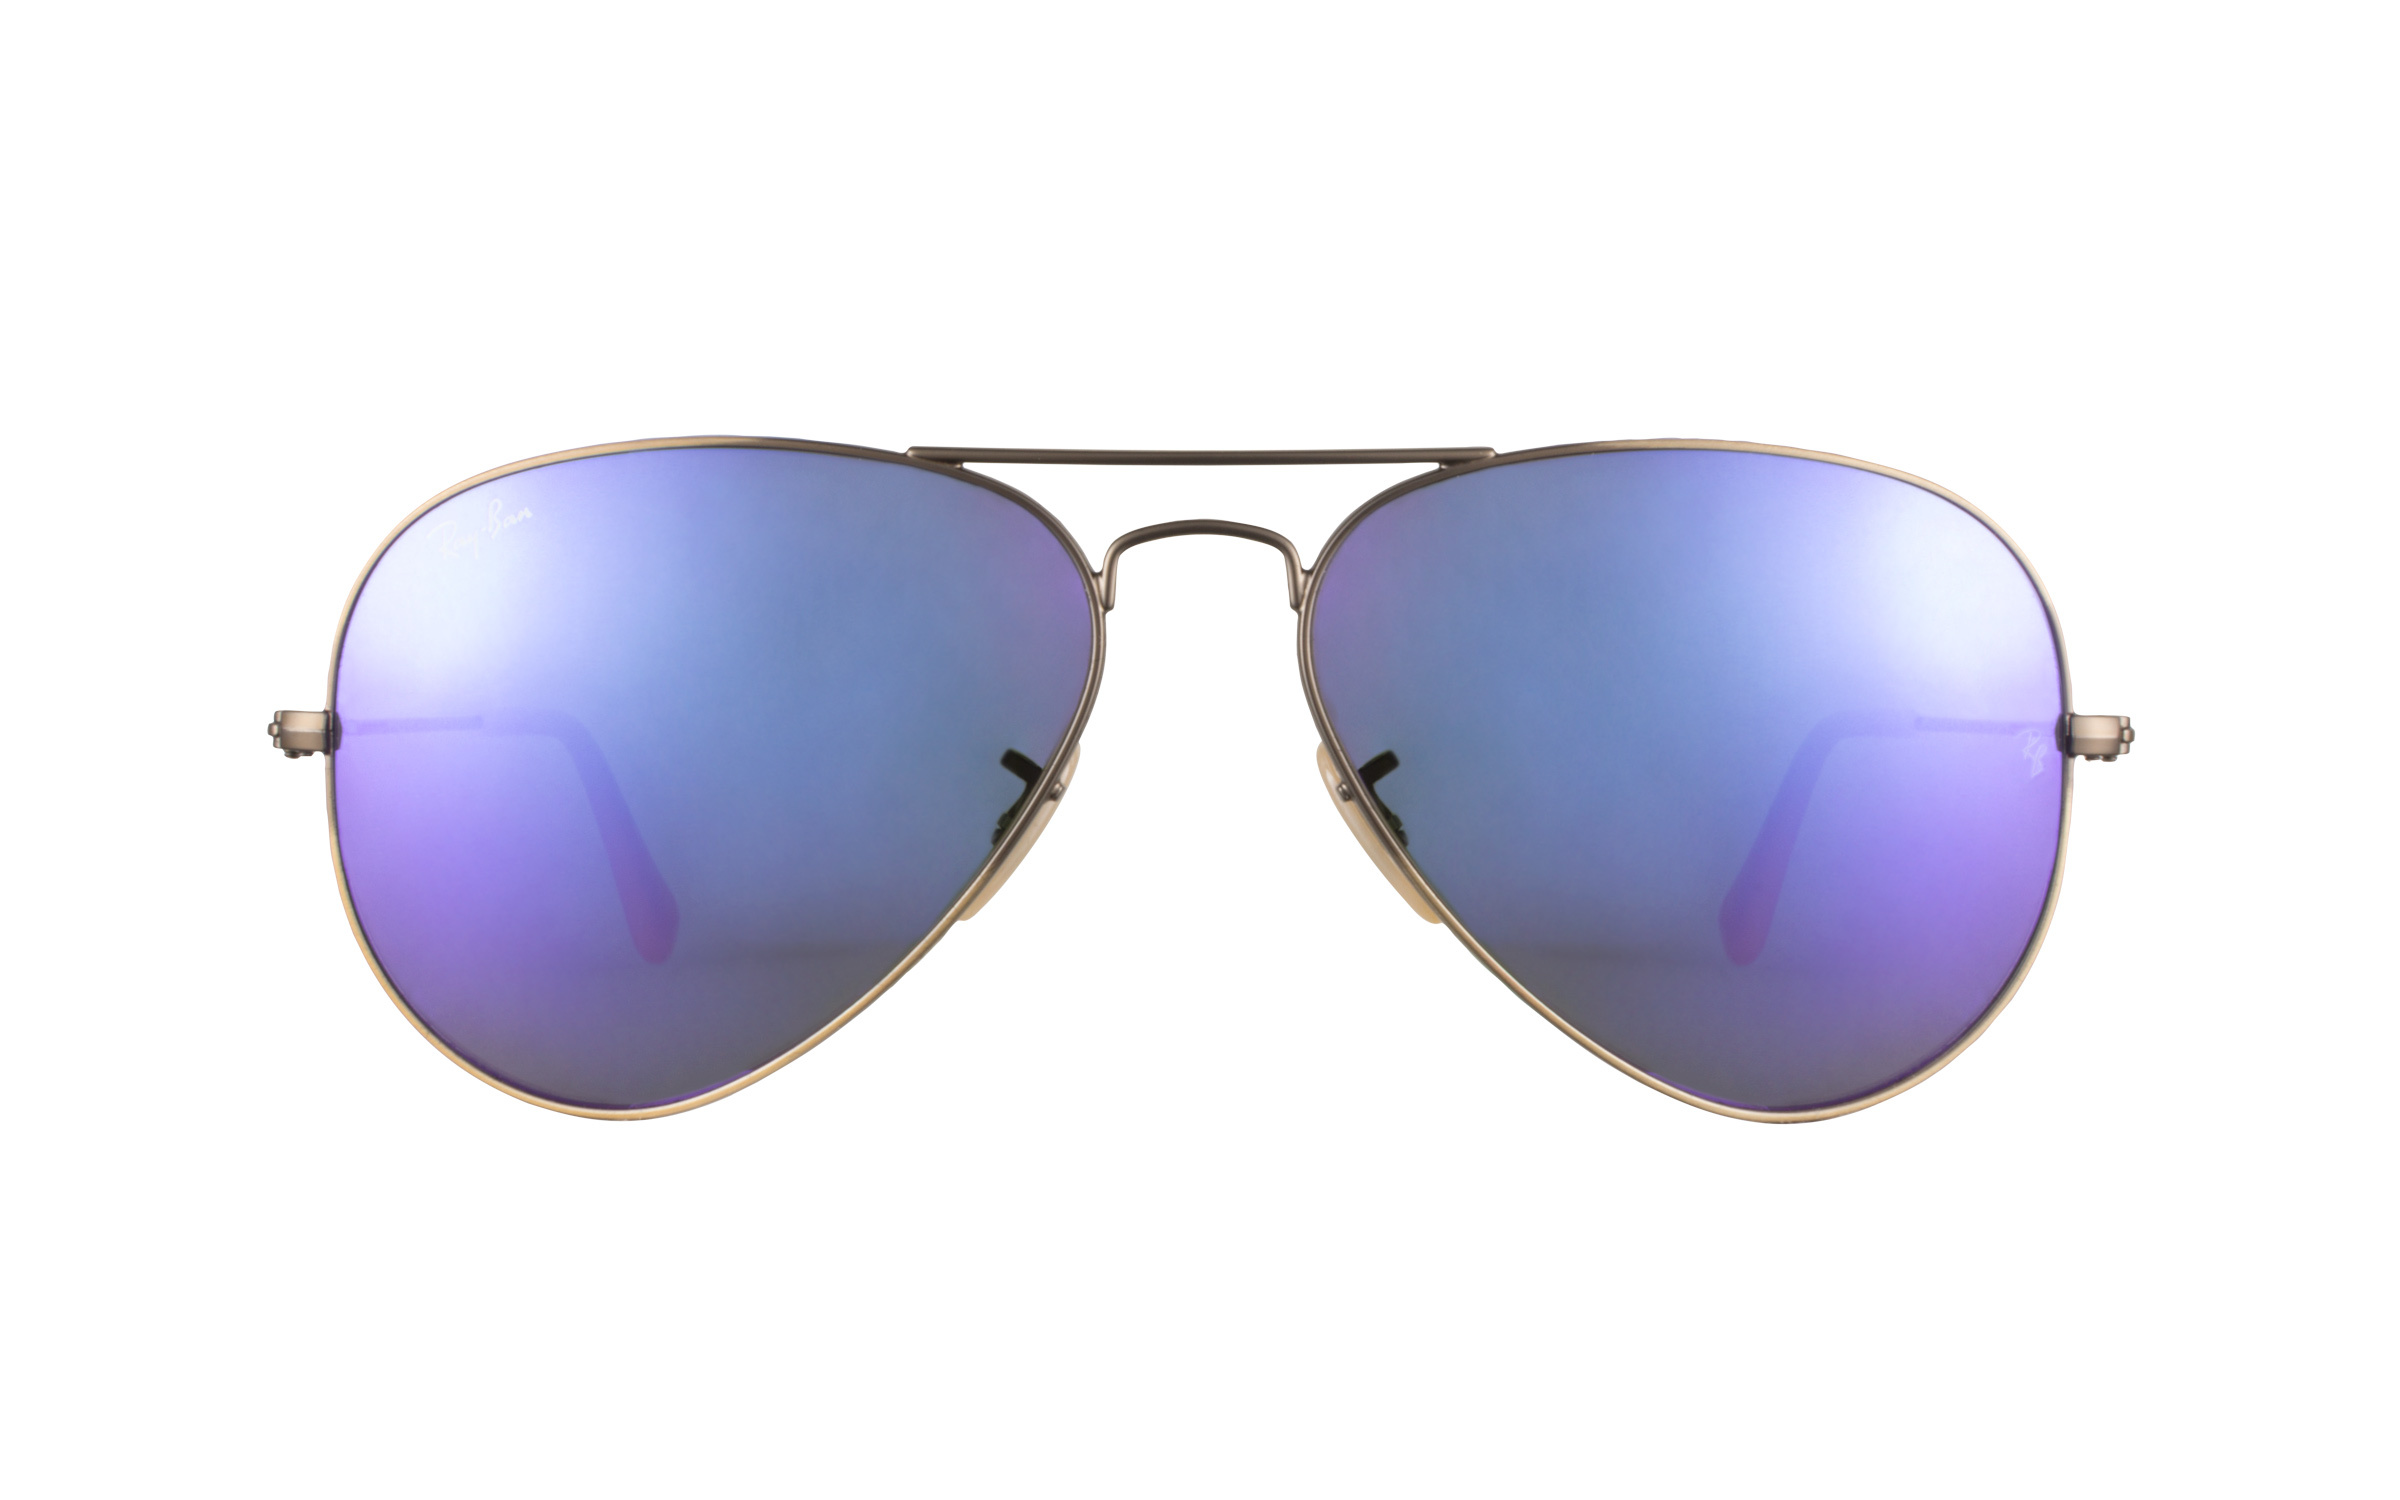 Ray-Ban 3025 167 1M Violet Mirror 58 Sunglasses